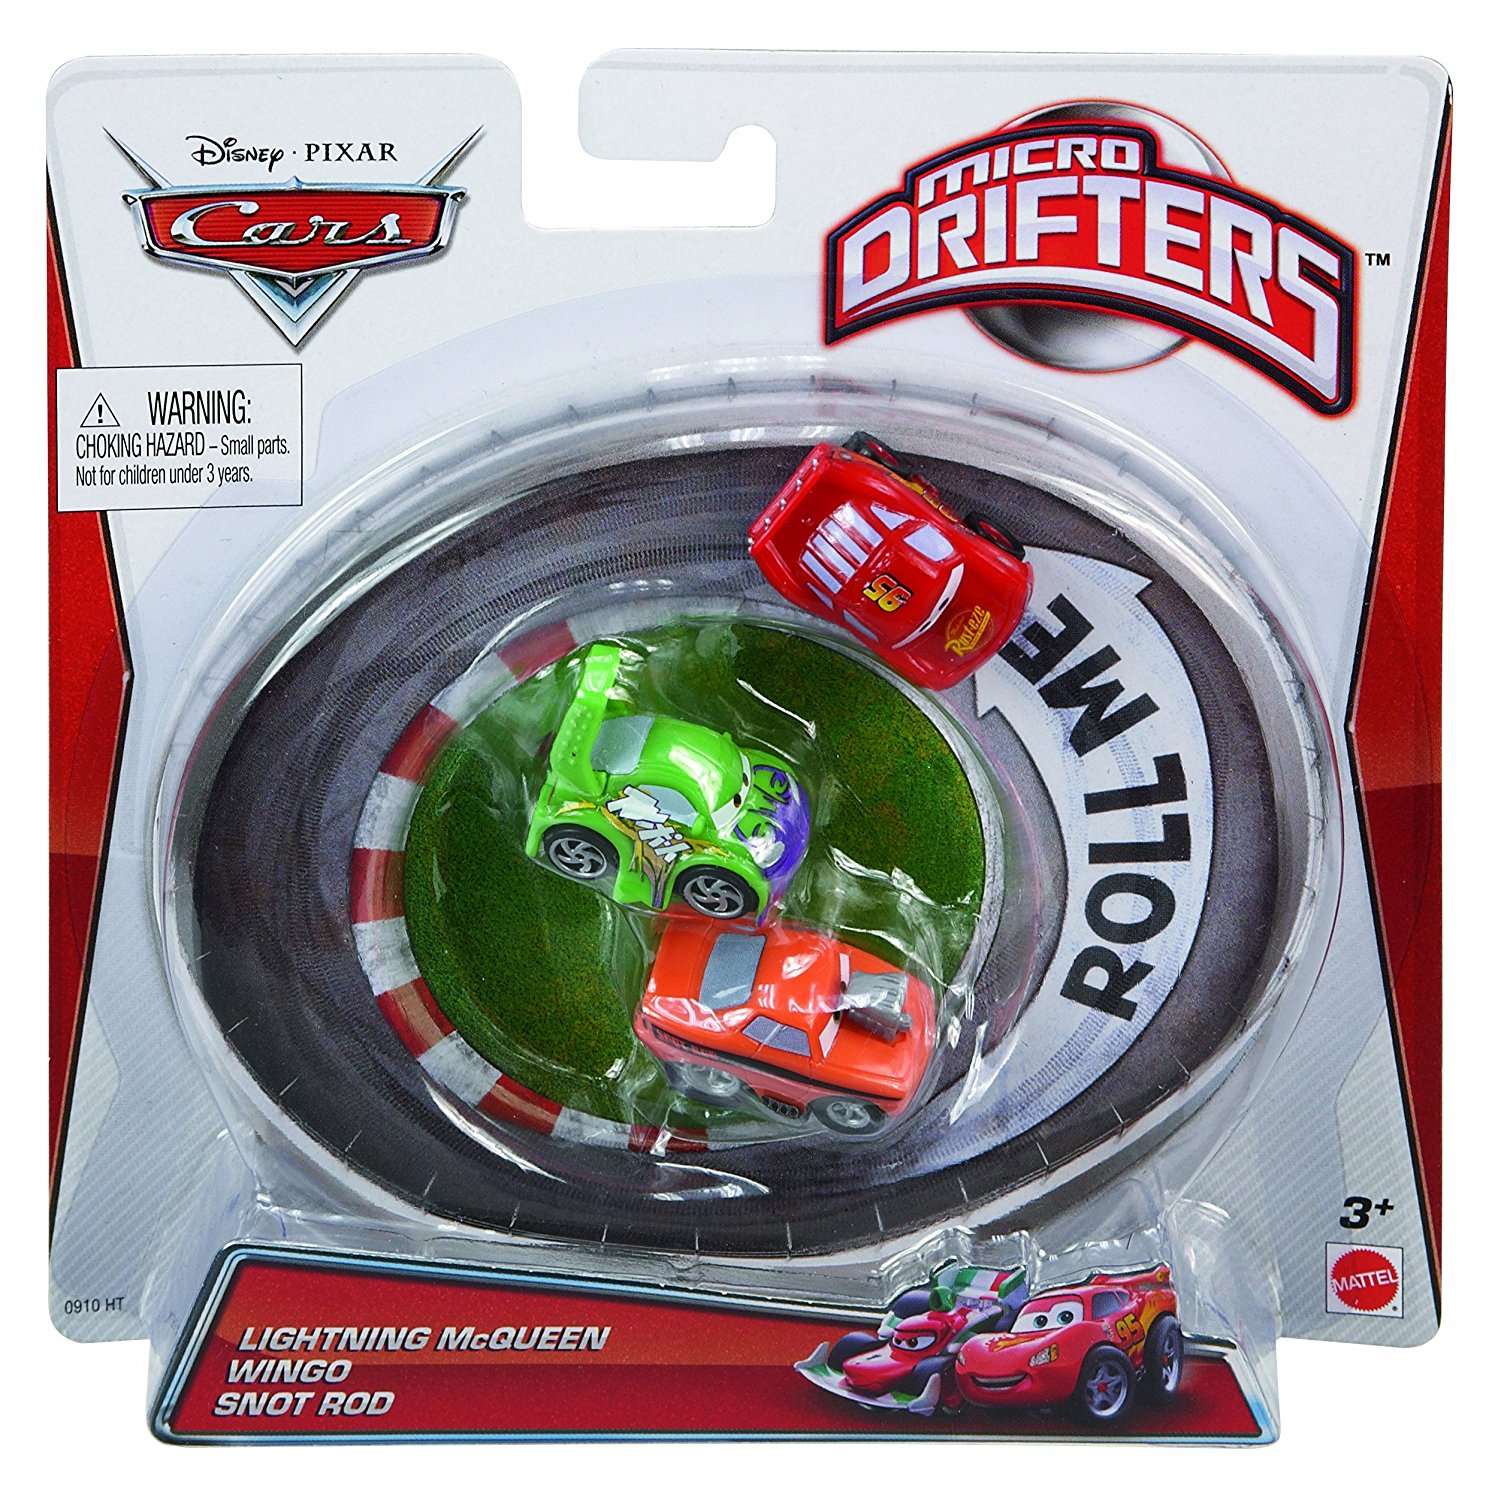 Cars Micro Drifters Lightning McQueen, Wingo and Snot Rod Vehicle, 3-Pack